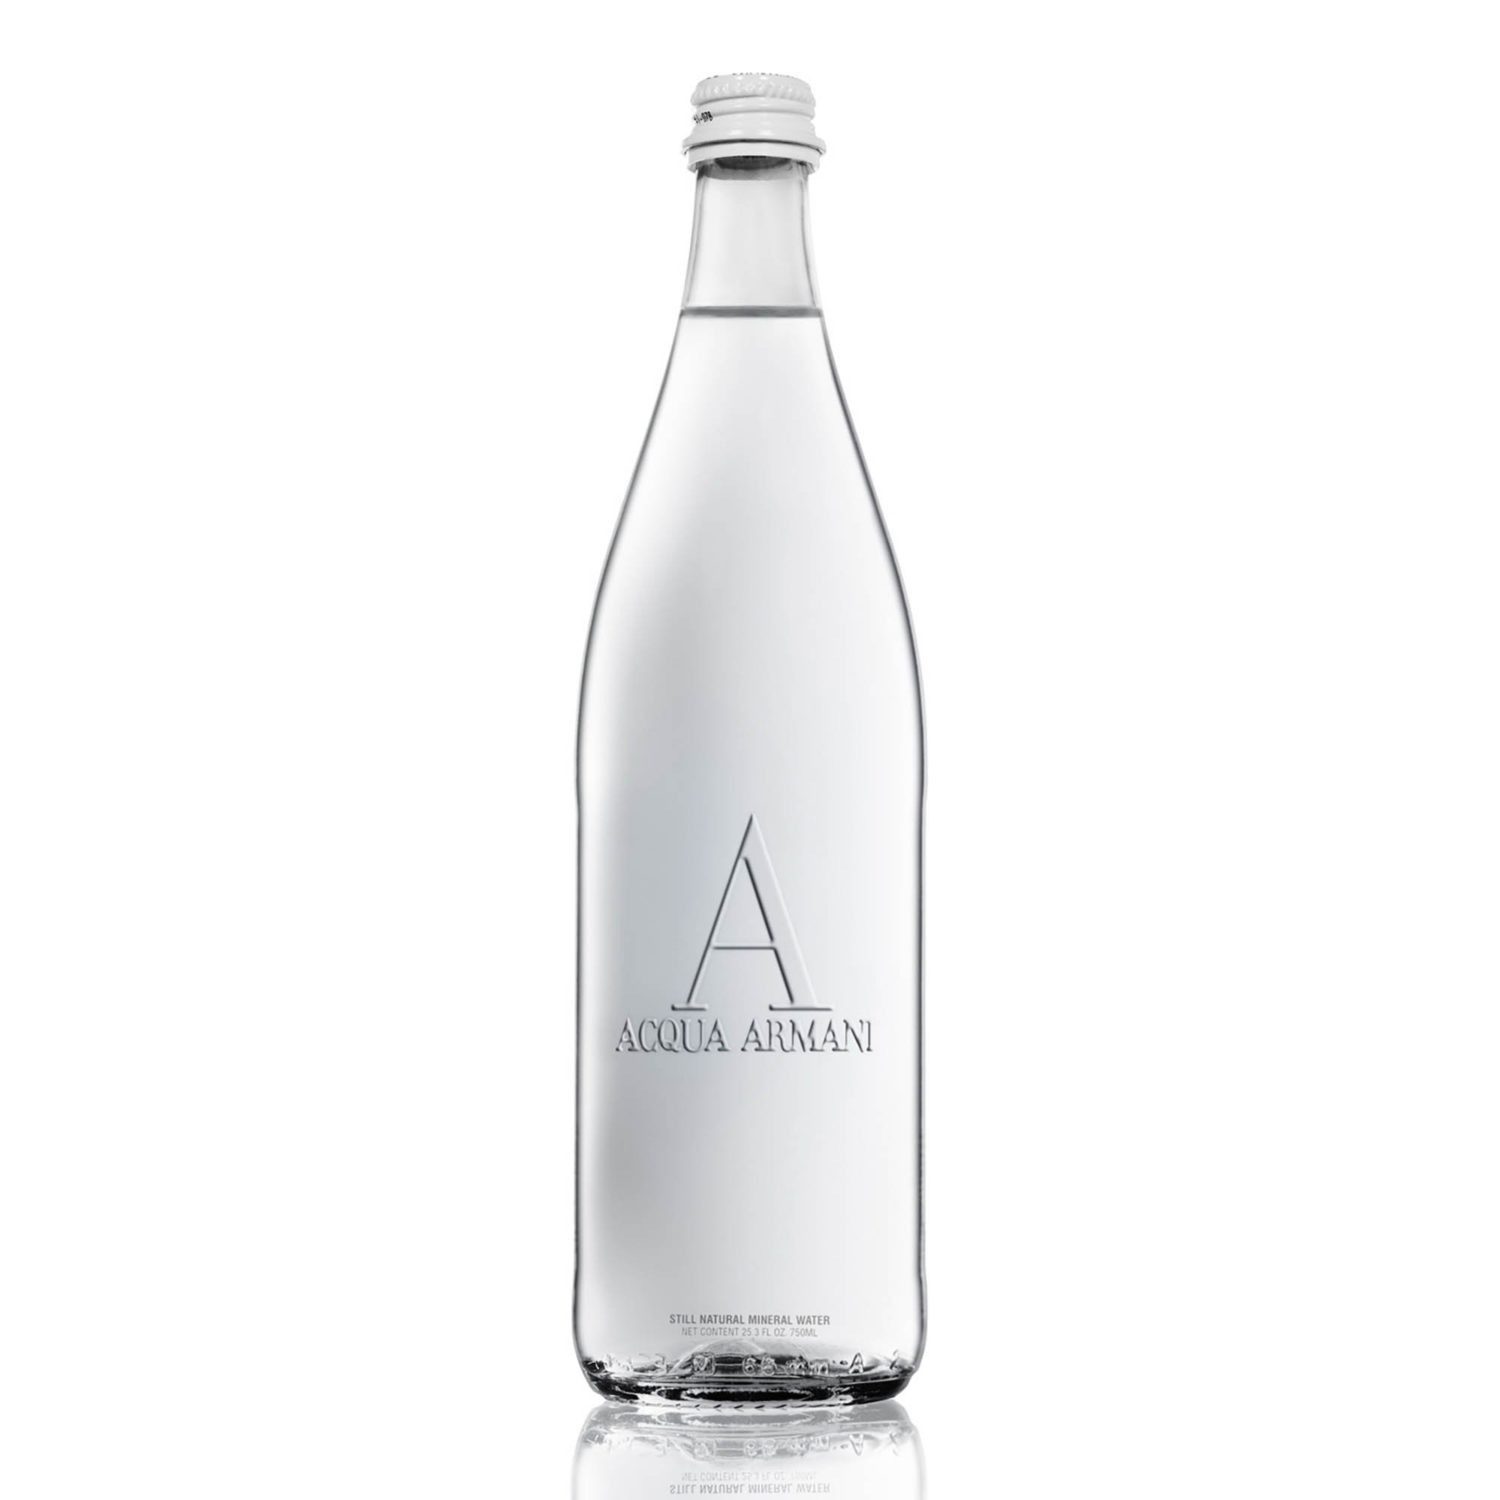 ACQUA ARMANI Watershop